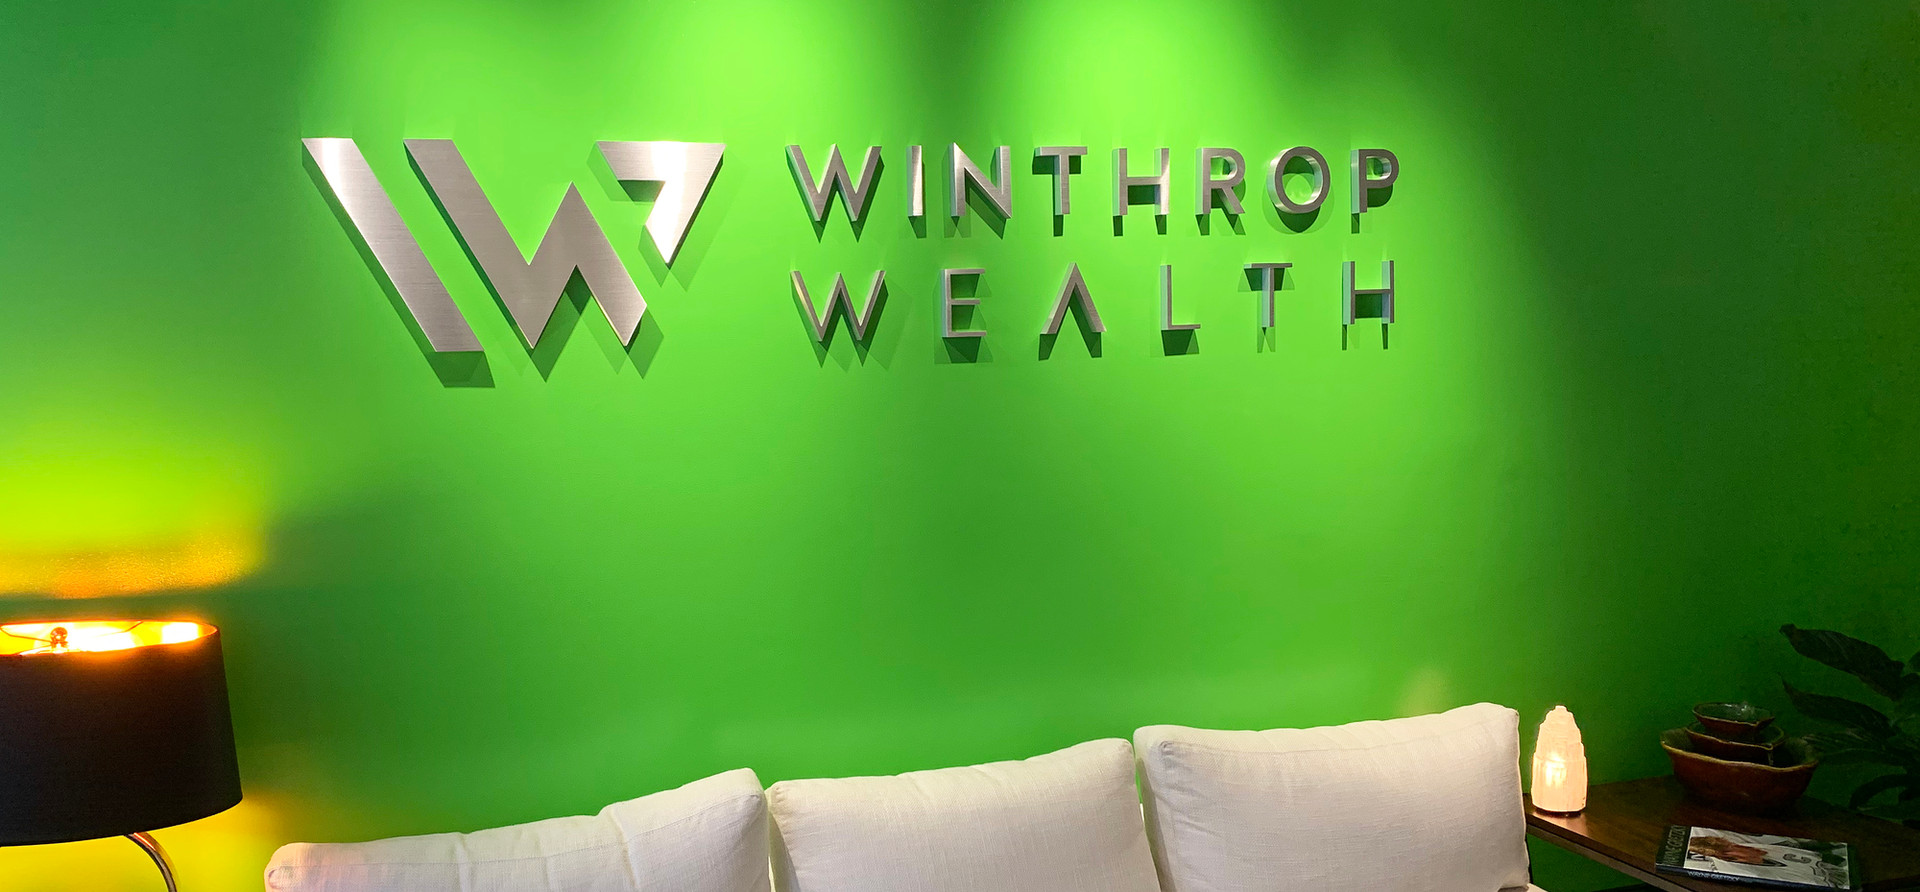 Winthrop Wealth Lobby